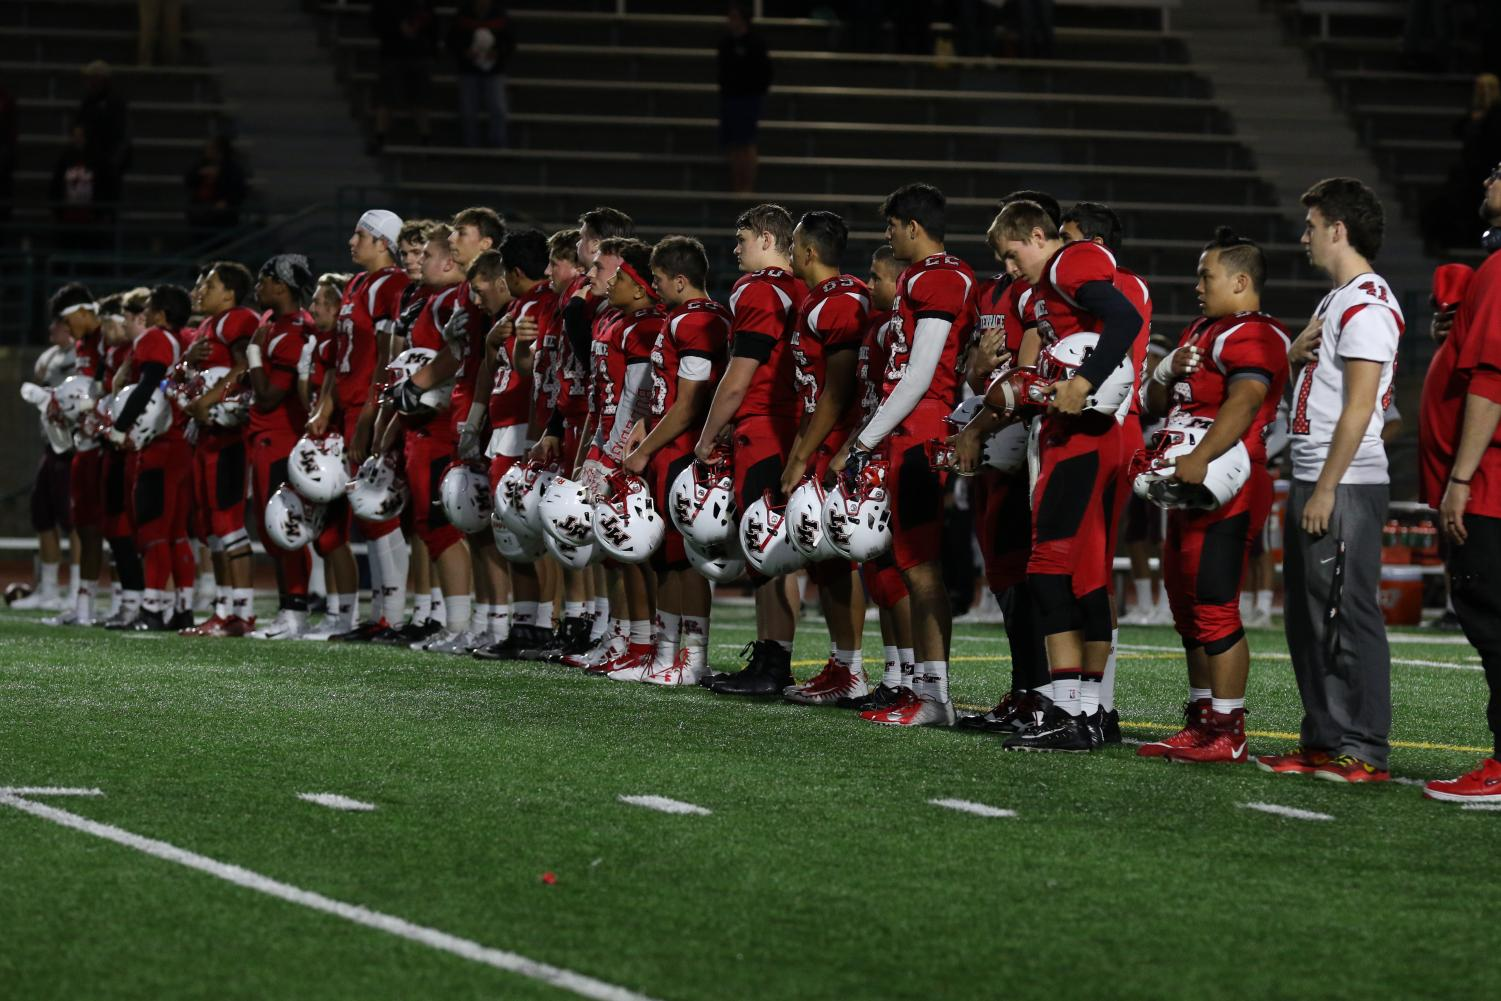 The Hawks football team focus their attention to pre-game routines before their match against the Mercer Island Islanders on Aug. 31. This season opener with a 28-6 loss for the Hawks, who are starting their first year in the 2A Northwest Conference Lake Division.